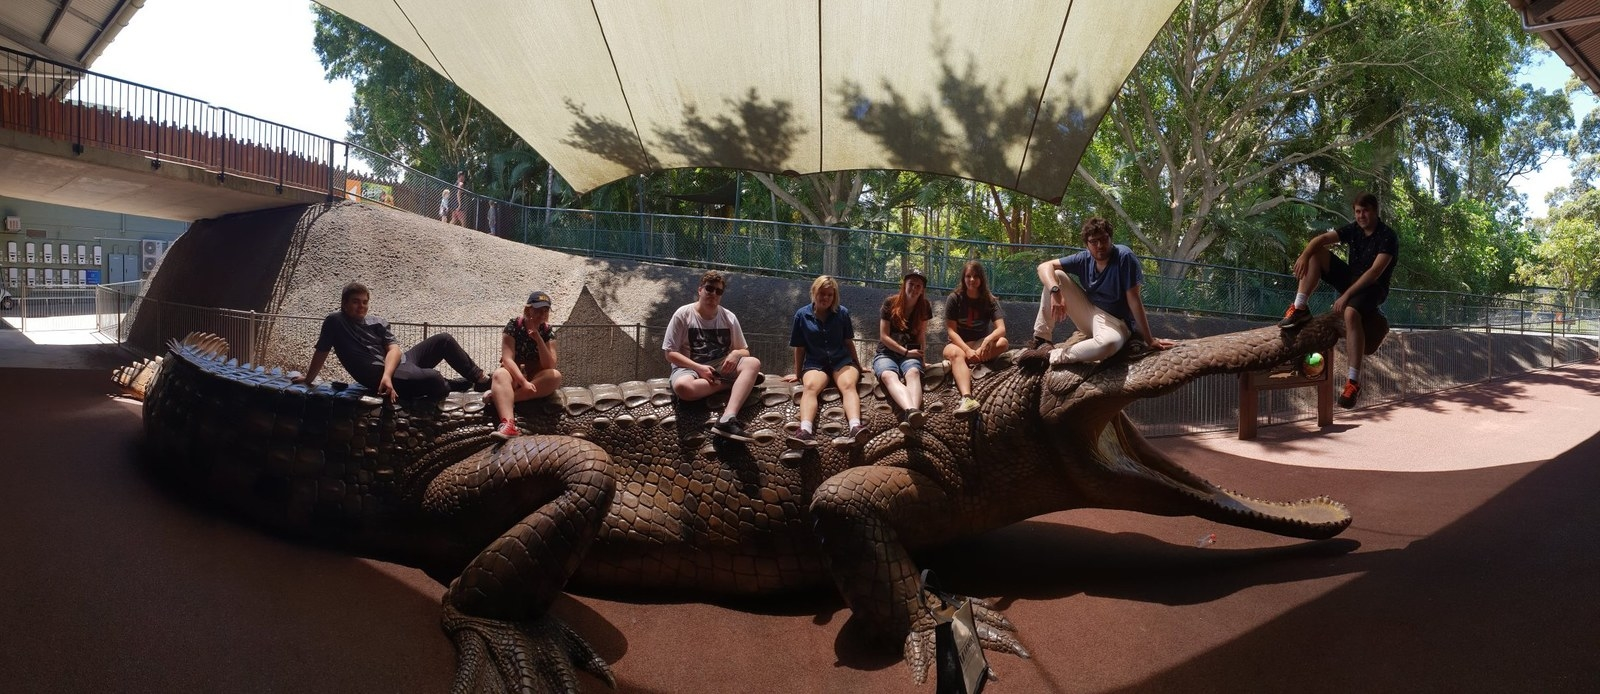 """It was a hot day, and Sarah had fun. """"We saw all the animals, pet a koala and kangaroos, held a blue tongue and hung out""""."""